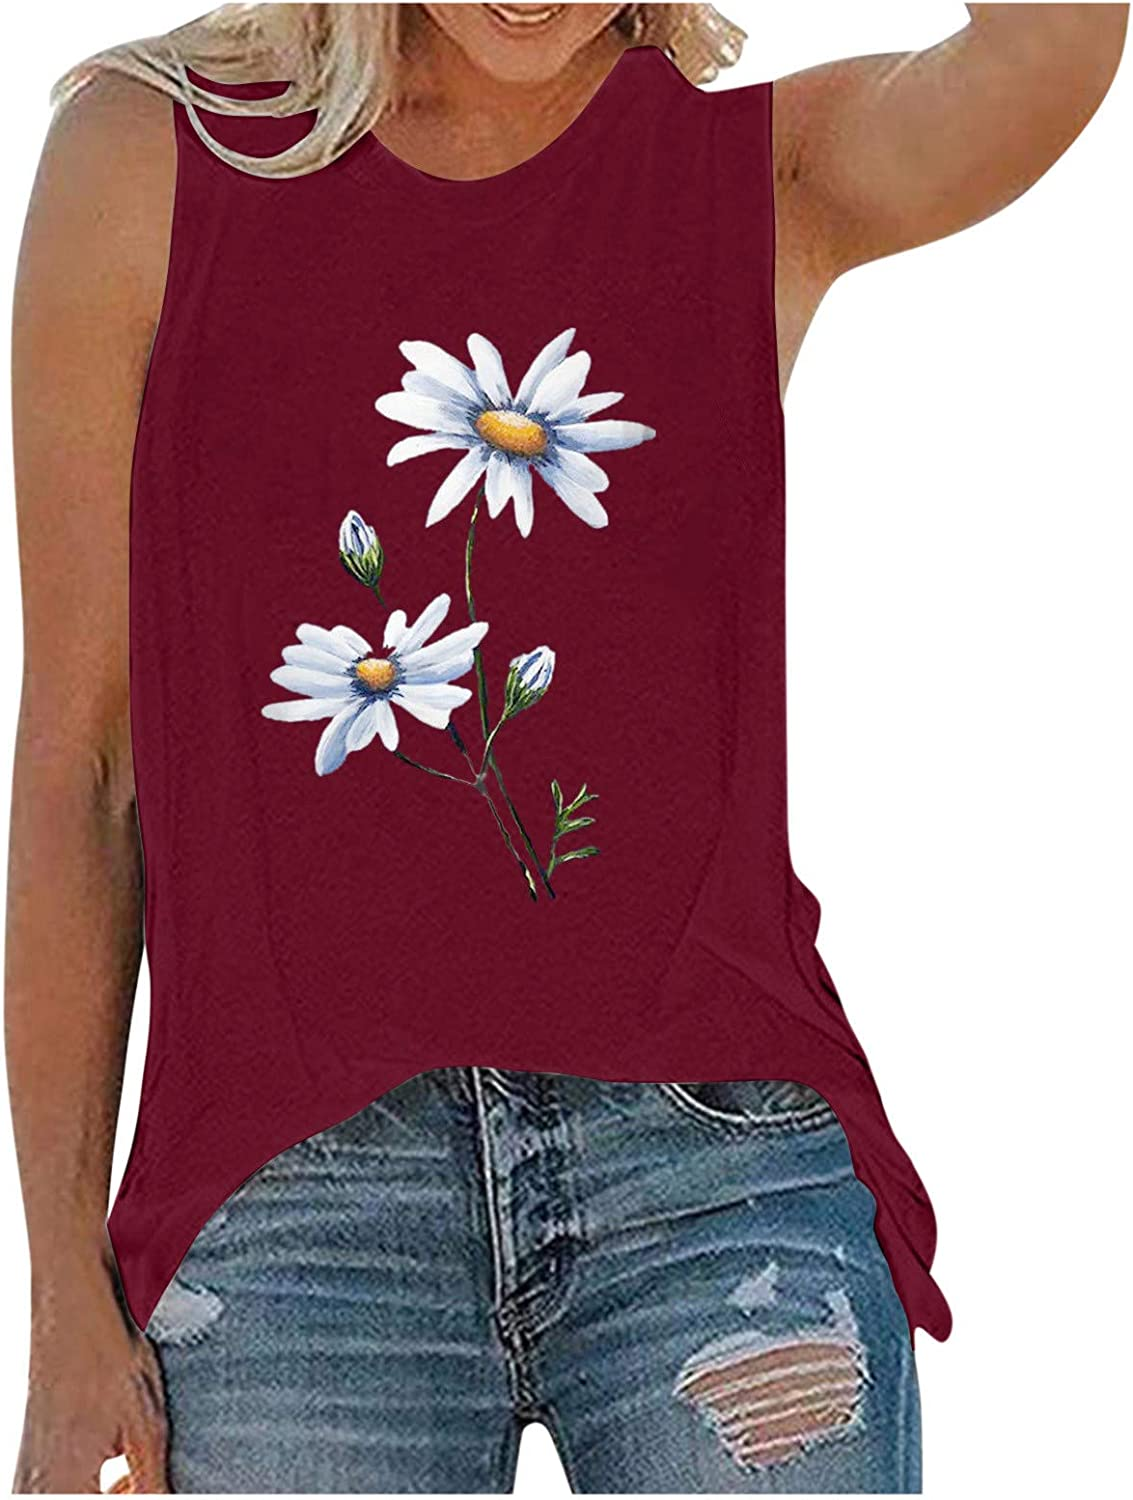 AODONG Tank Tops for Women Casual Summer Plus Size Womens V Neck Camisole Leaf Print Tanks Tops and Blouse S-XXL Red